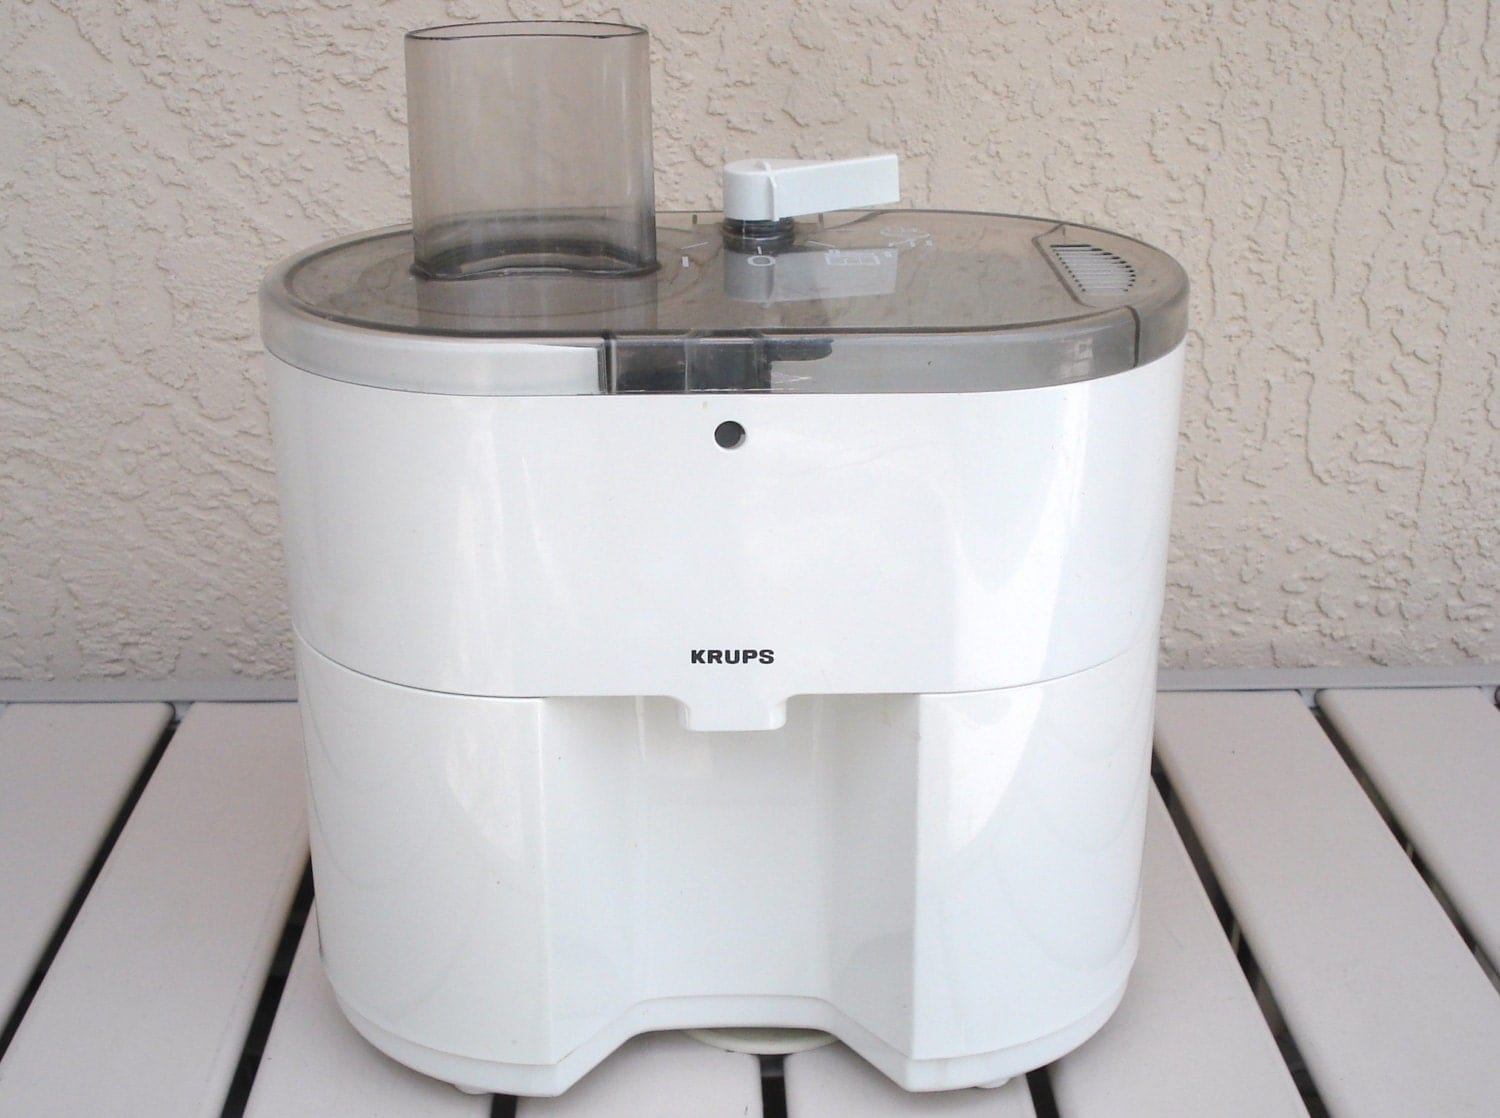 Krups Slow Juice Extractor : KRUPS Electric Juice Extractor Model 294 Motor Shredder